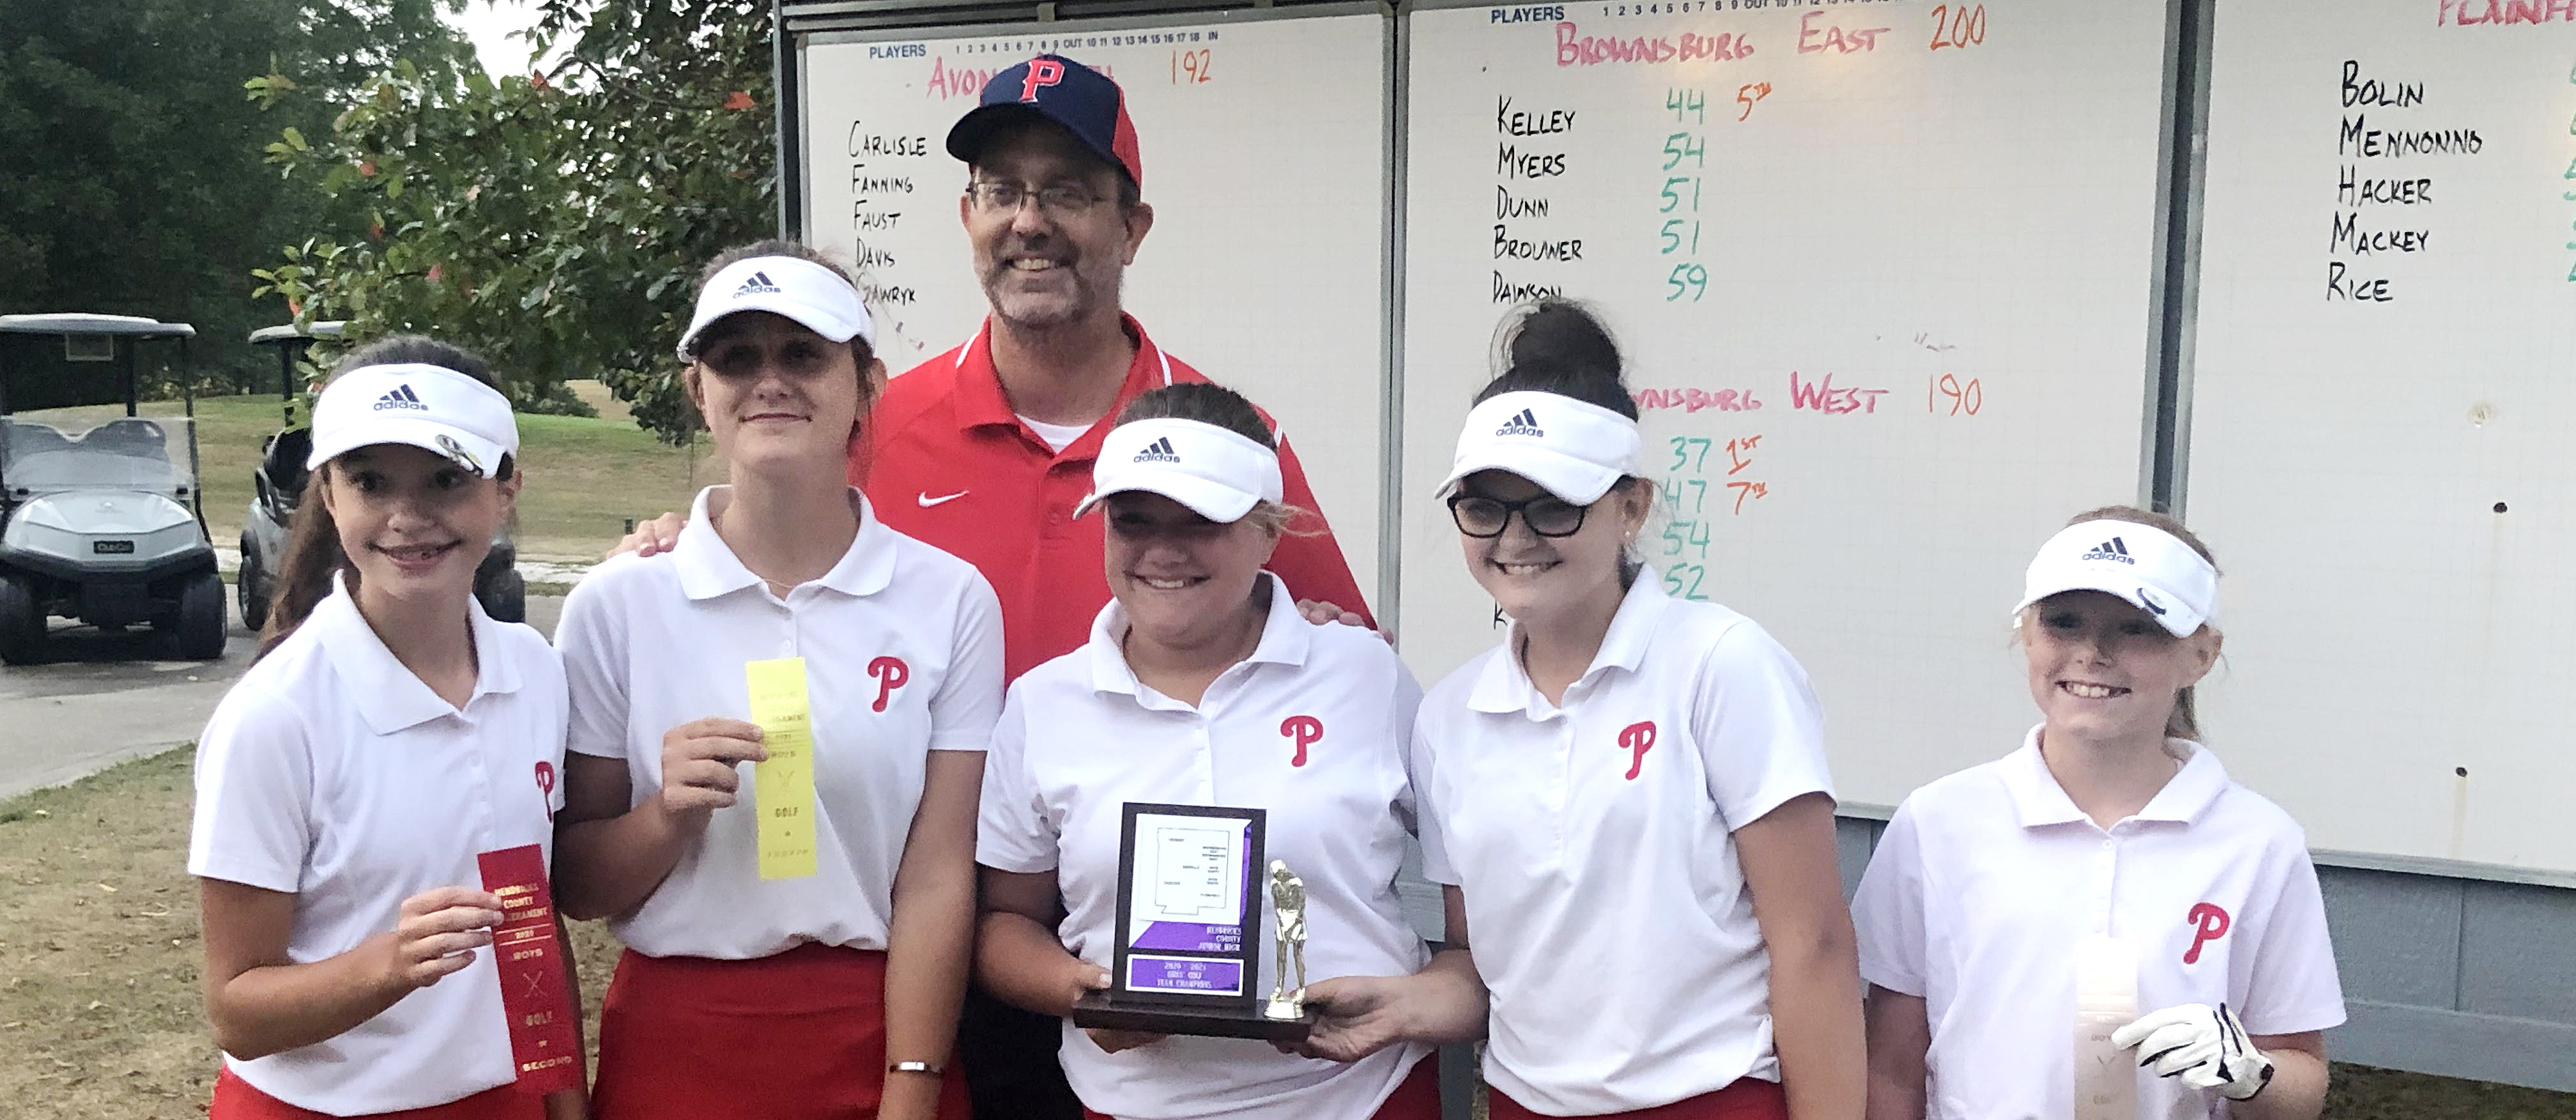 PCMS Girls  Golf team: County Champs!